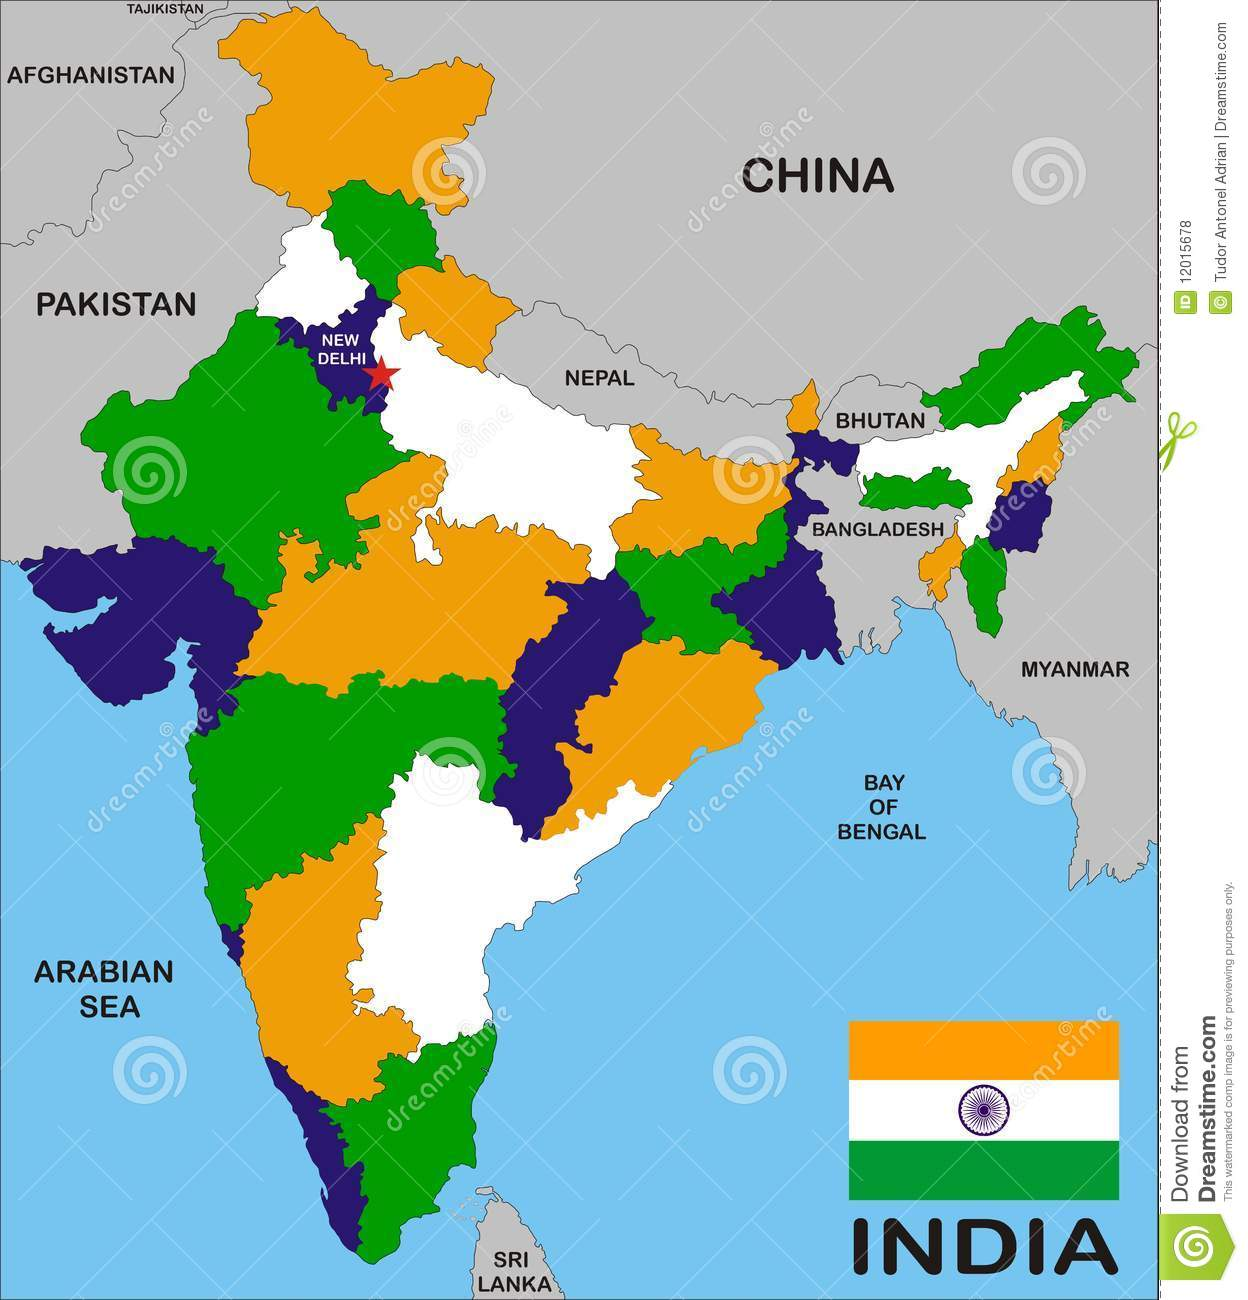 India Map Download India map stock illustration. Illustration of nepal, china   12015678 India Map Download